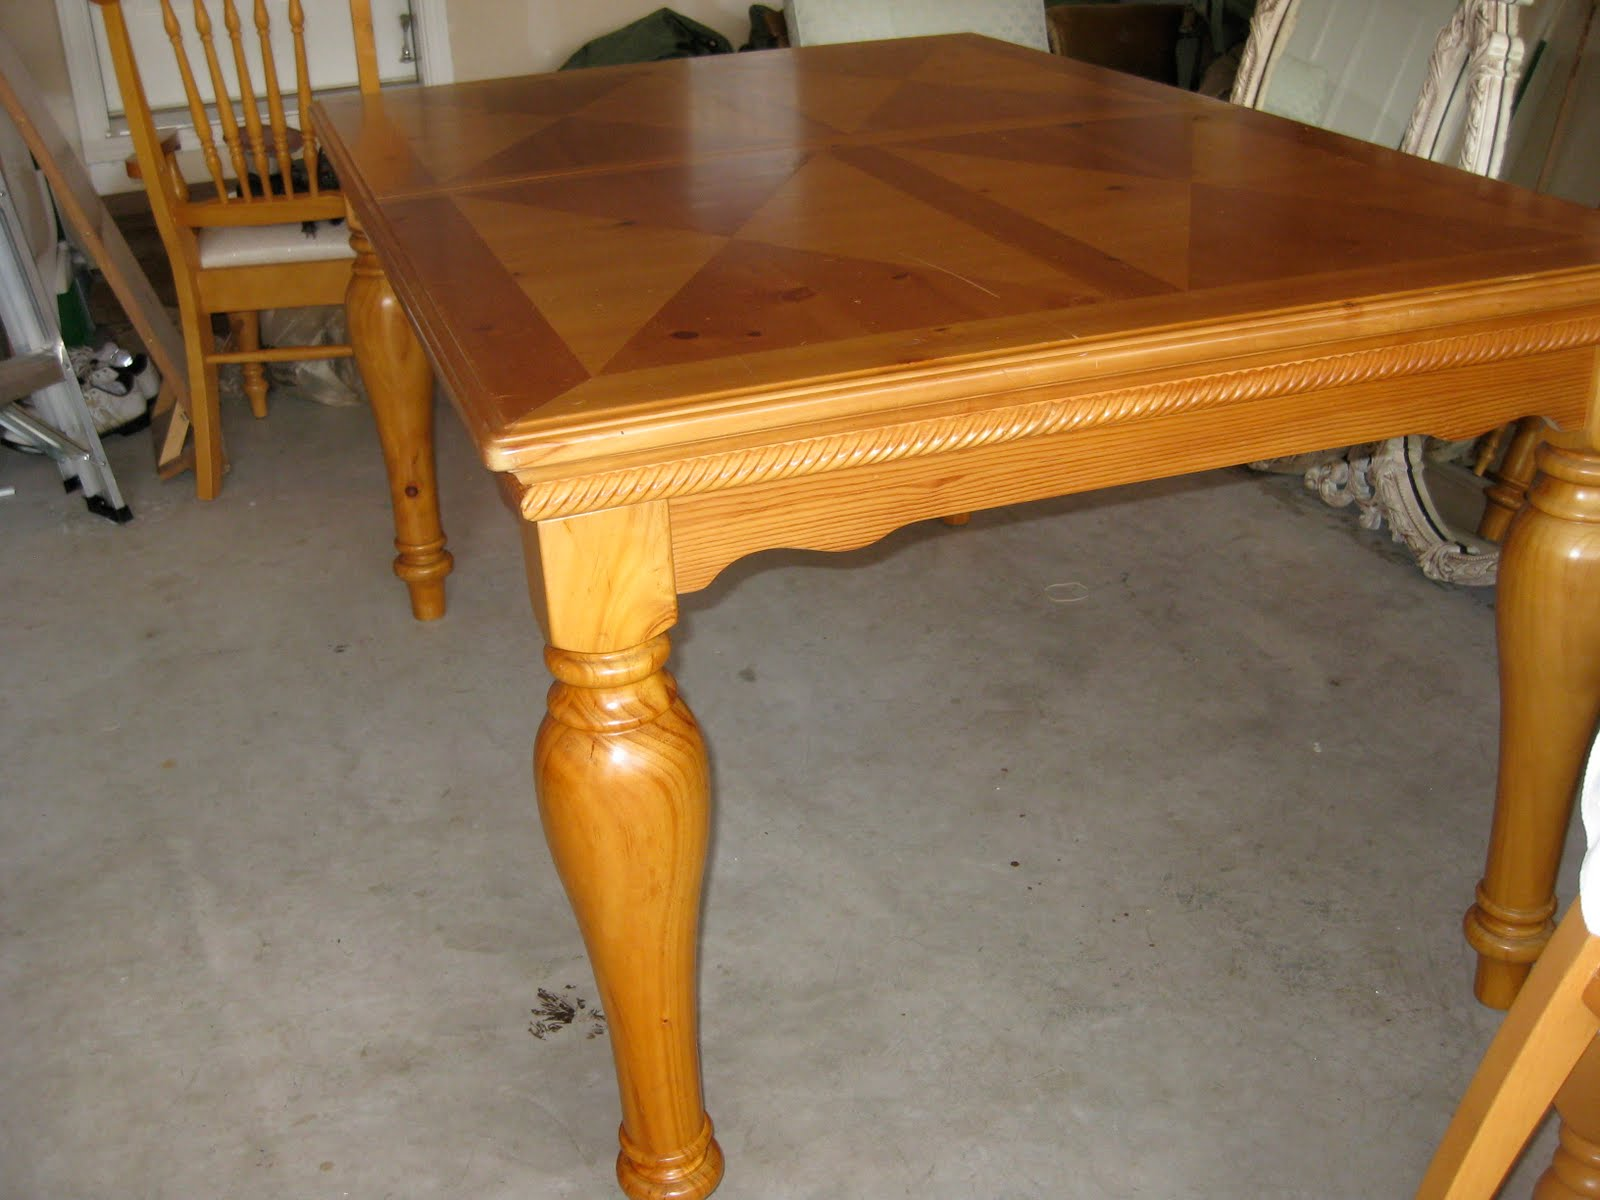 I Searched All Over And We Ended Up Getting This Table From A Lady On Craigslist Payed 300 That Included The 8 Chairs